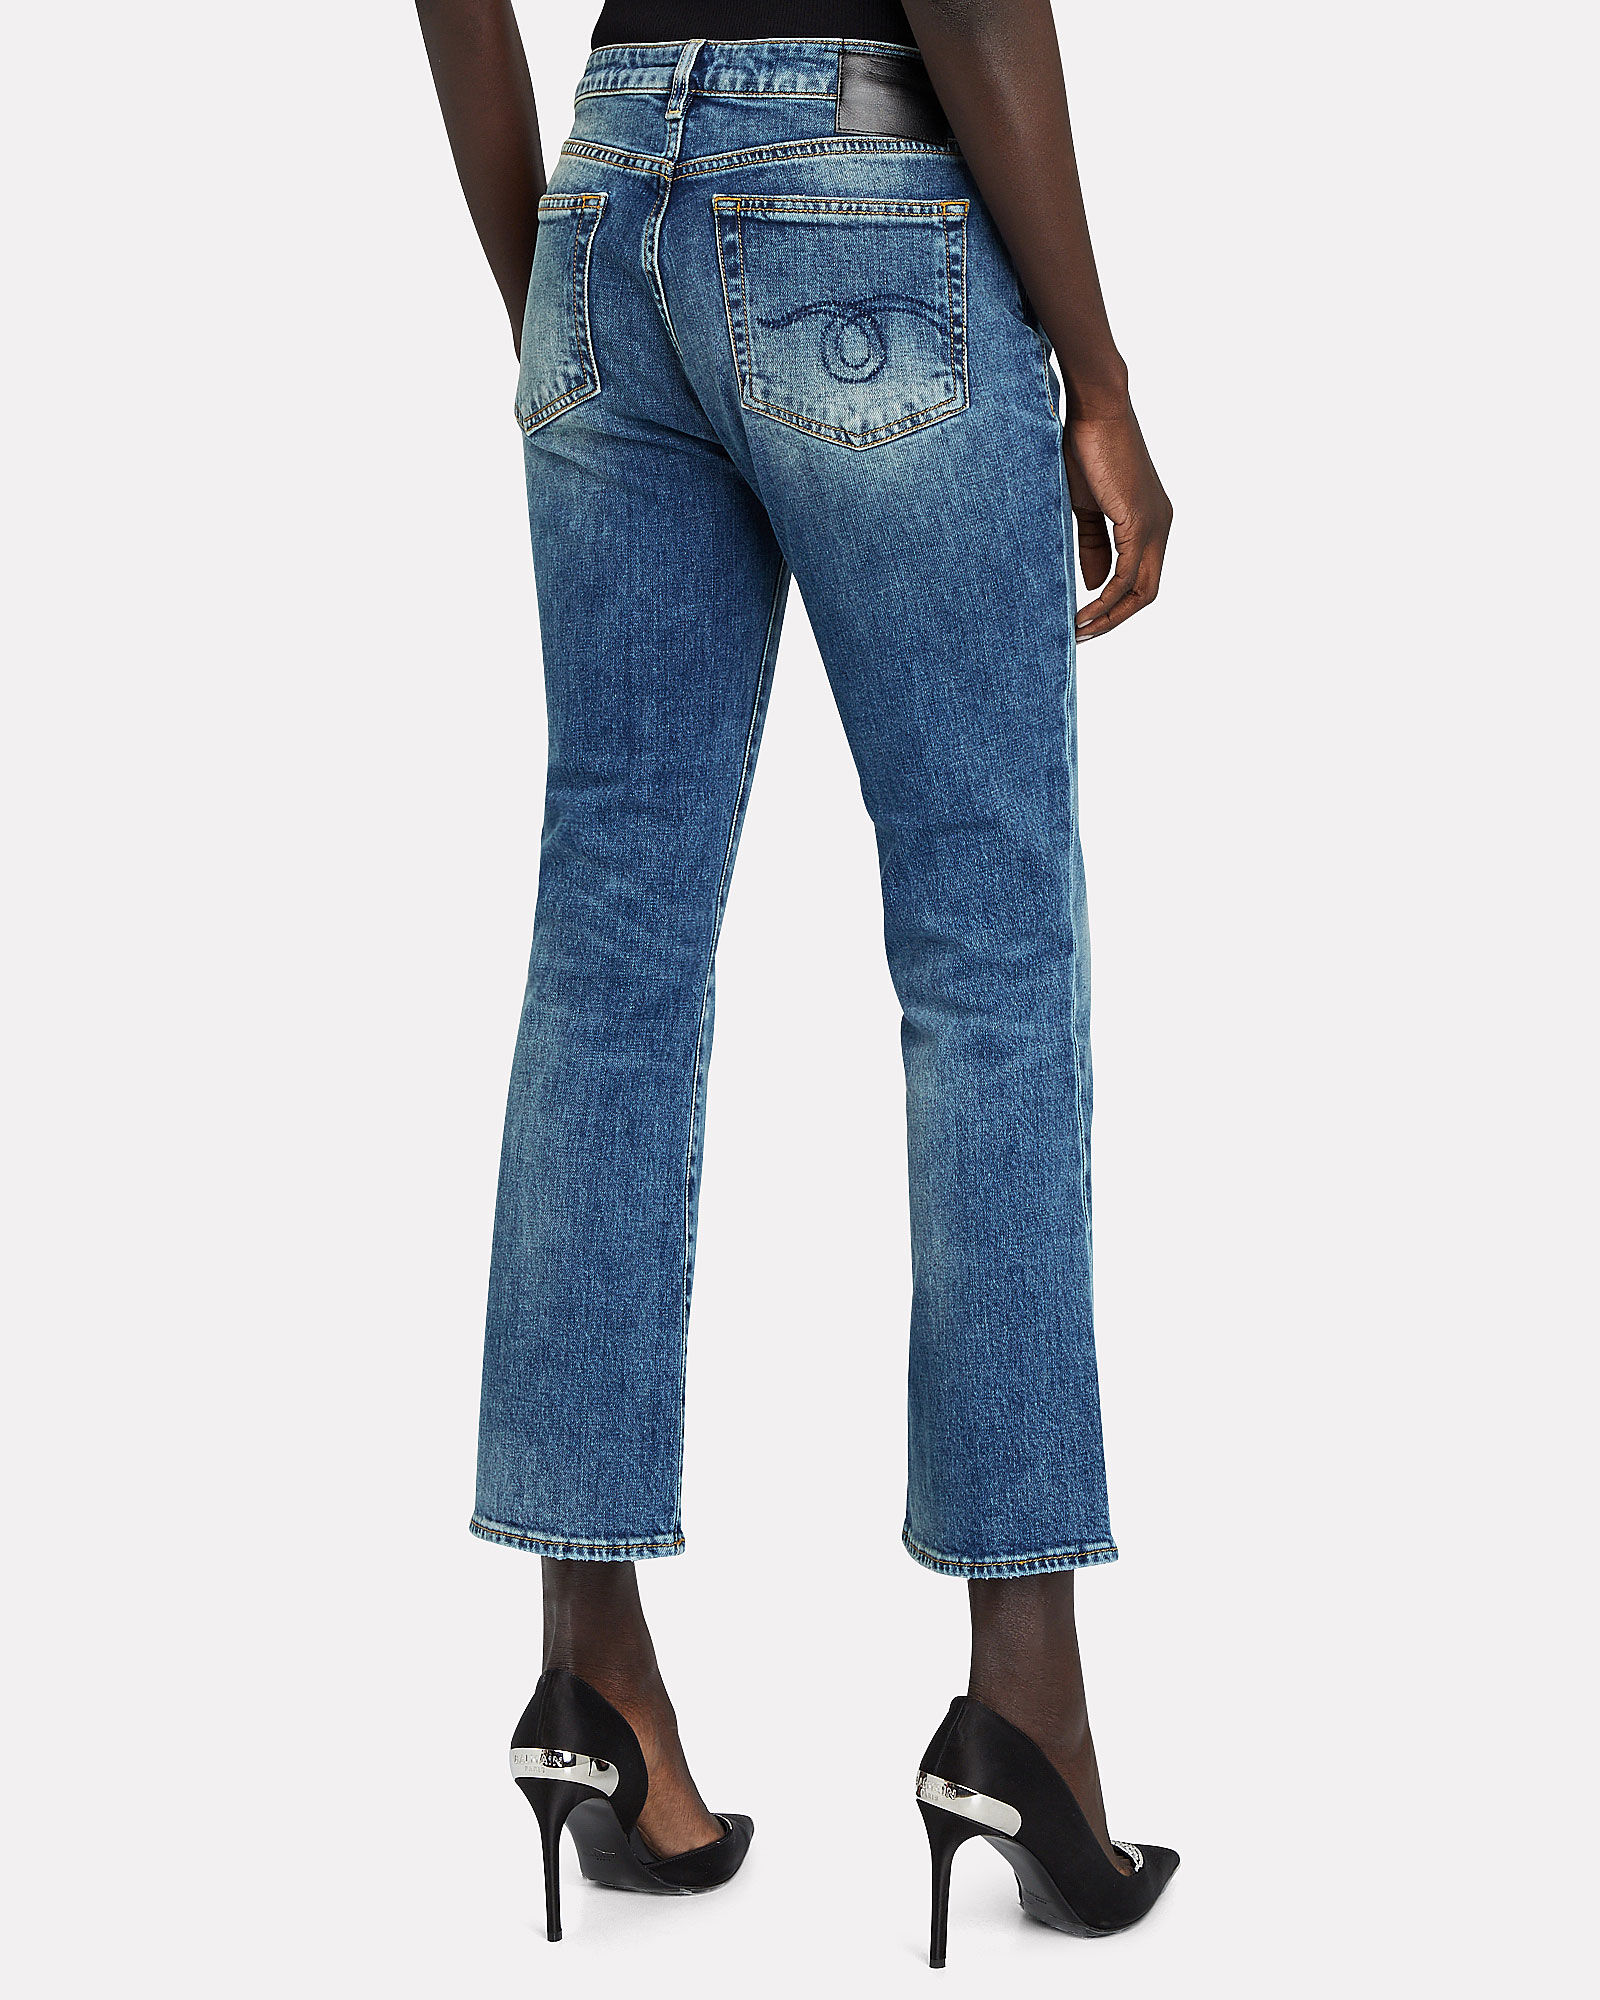 Kick Fit High-Rise Jeans, JASPER STRETCH, hi-res